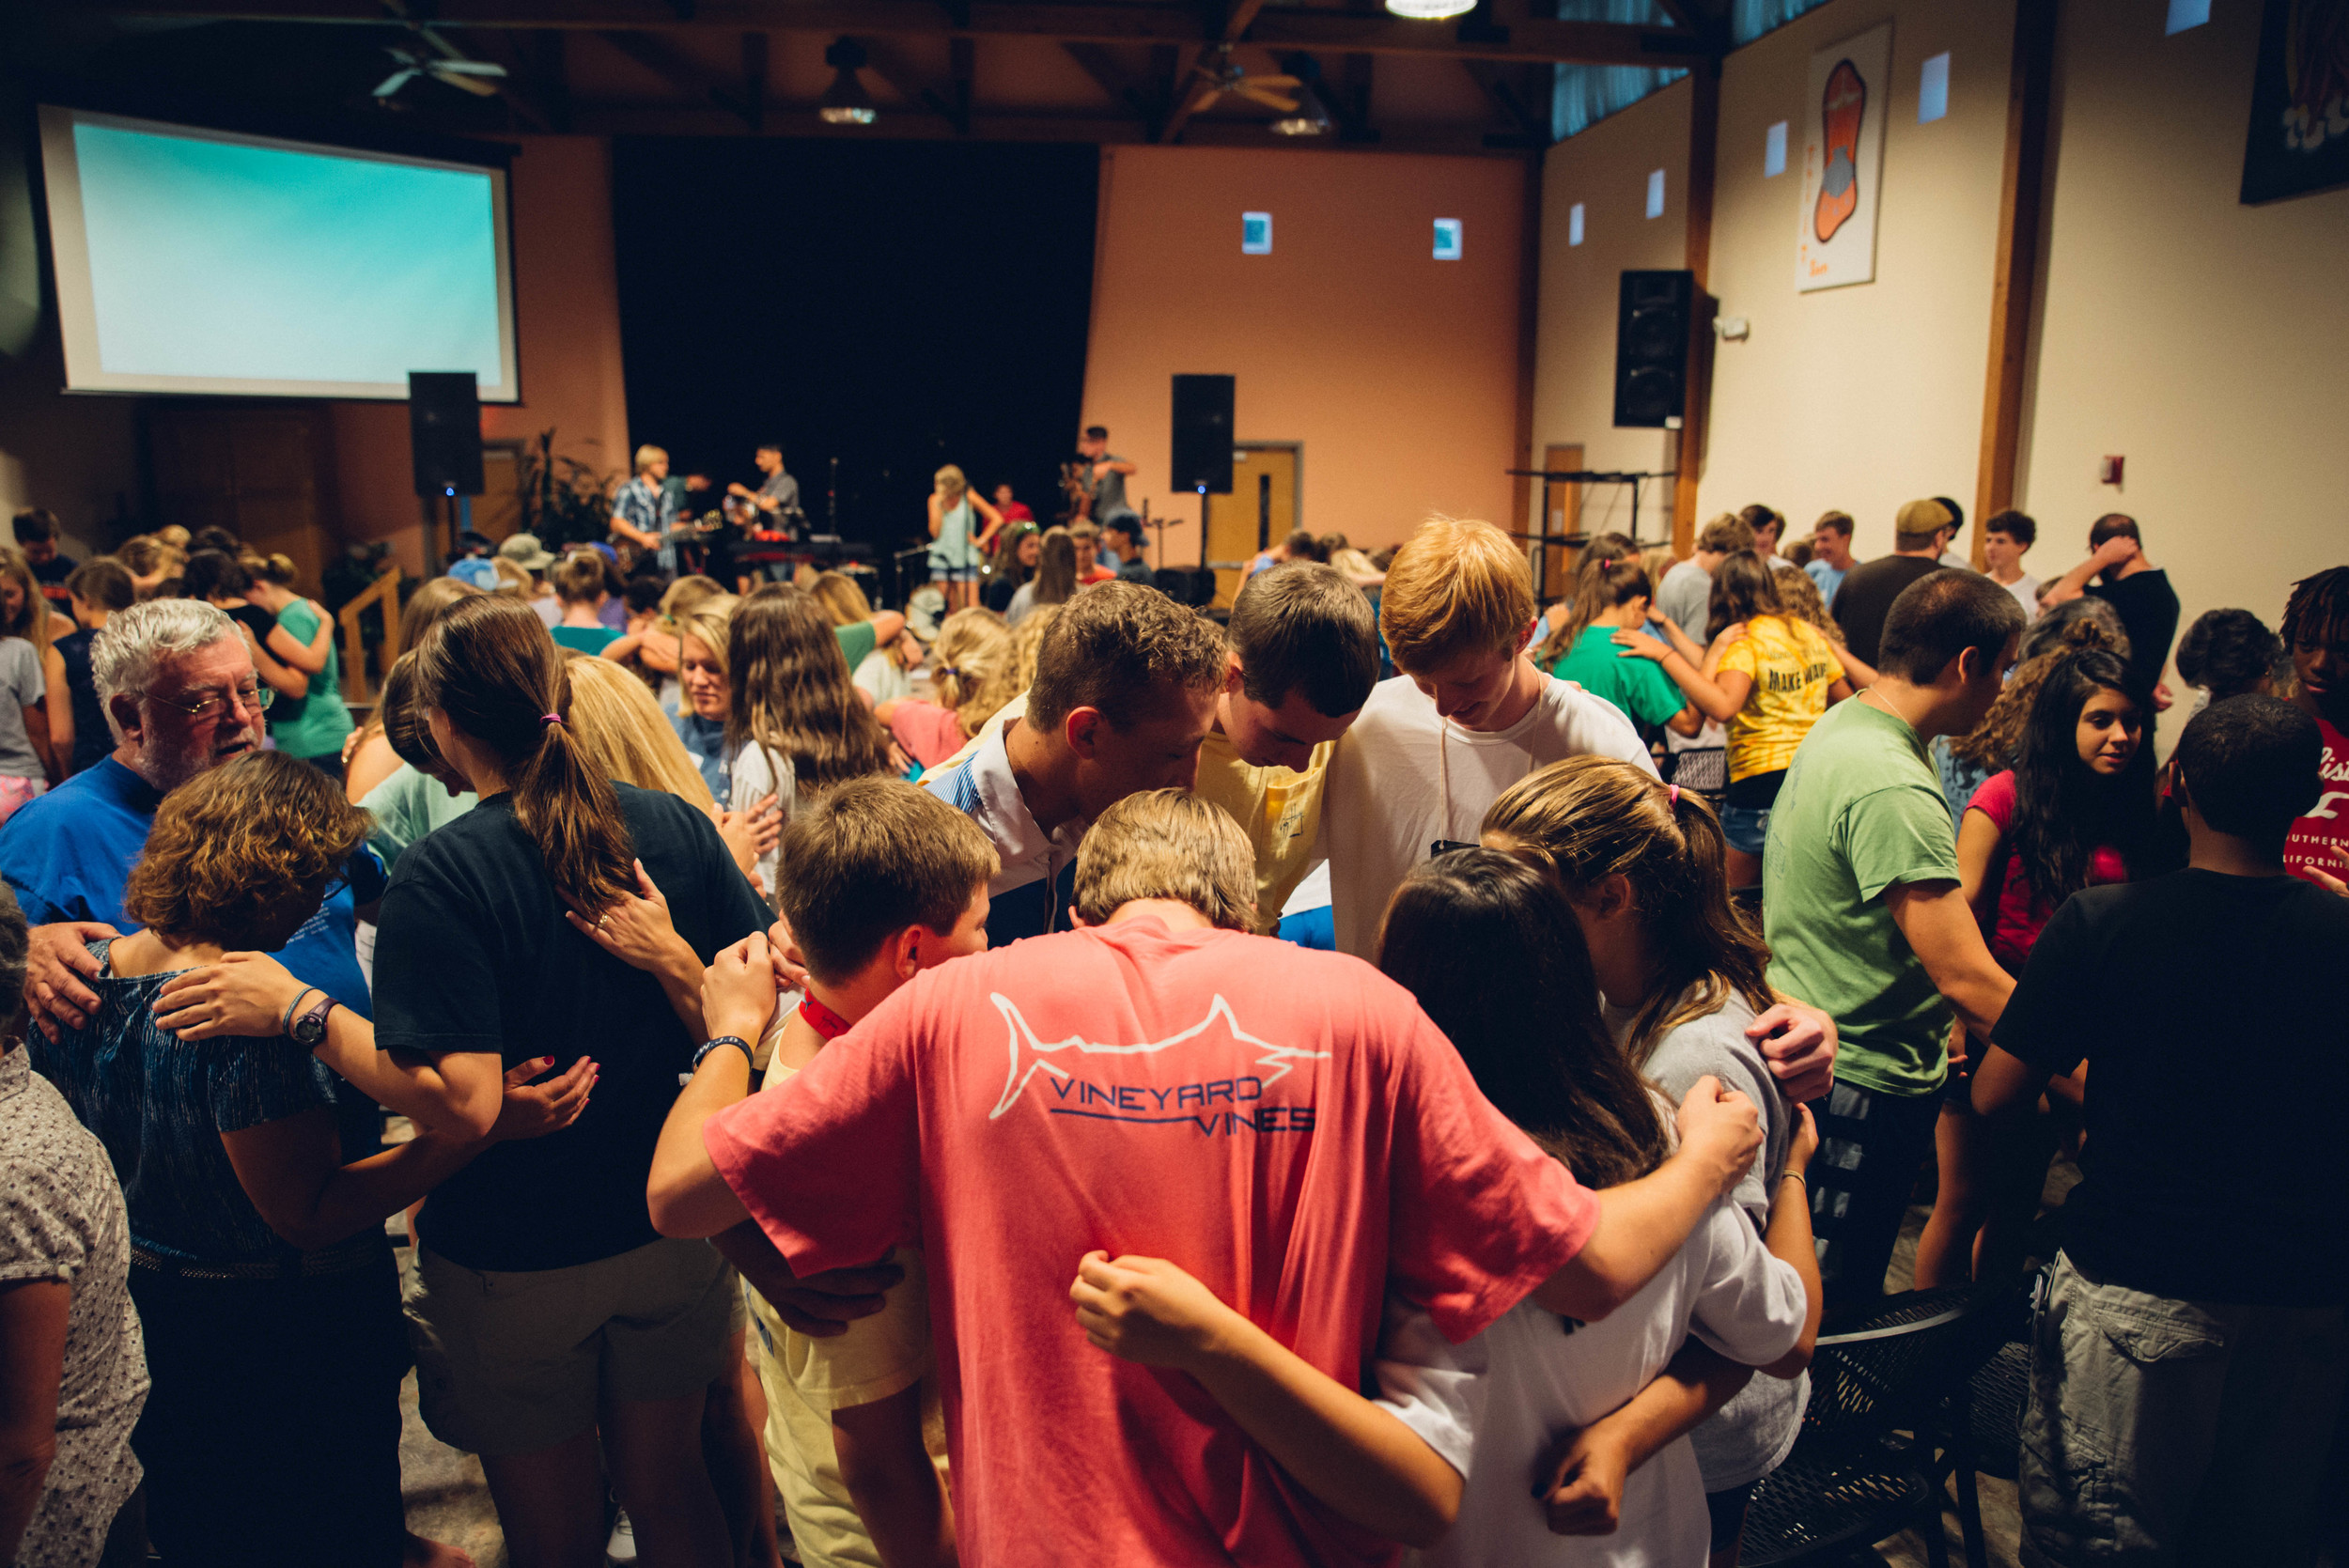 Students participate in worship and bible study twice daily during SLAM service weeks.Young people not only engage in practical service, but are daily challenged in their spiritual walk. They are reminded that love of God and care for those in need go hand-in-hand.